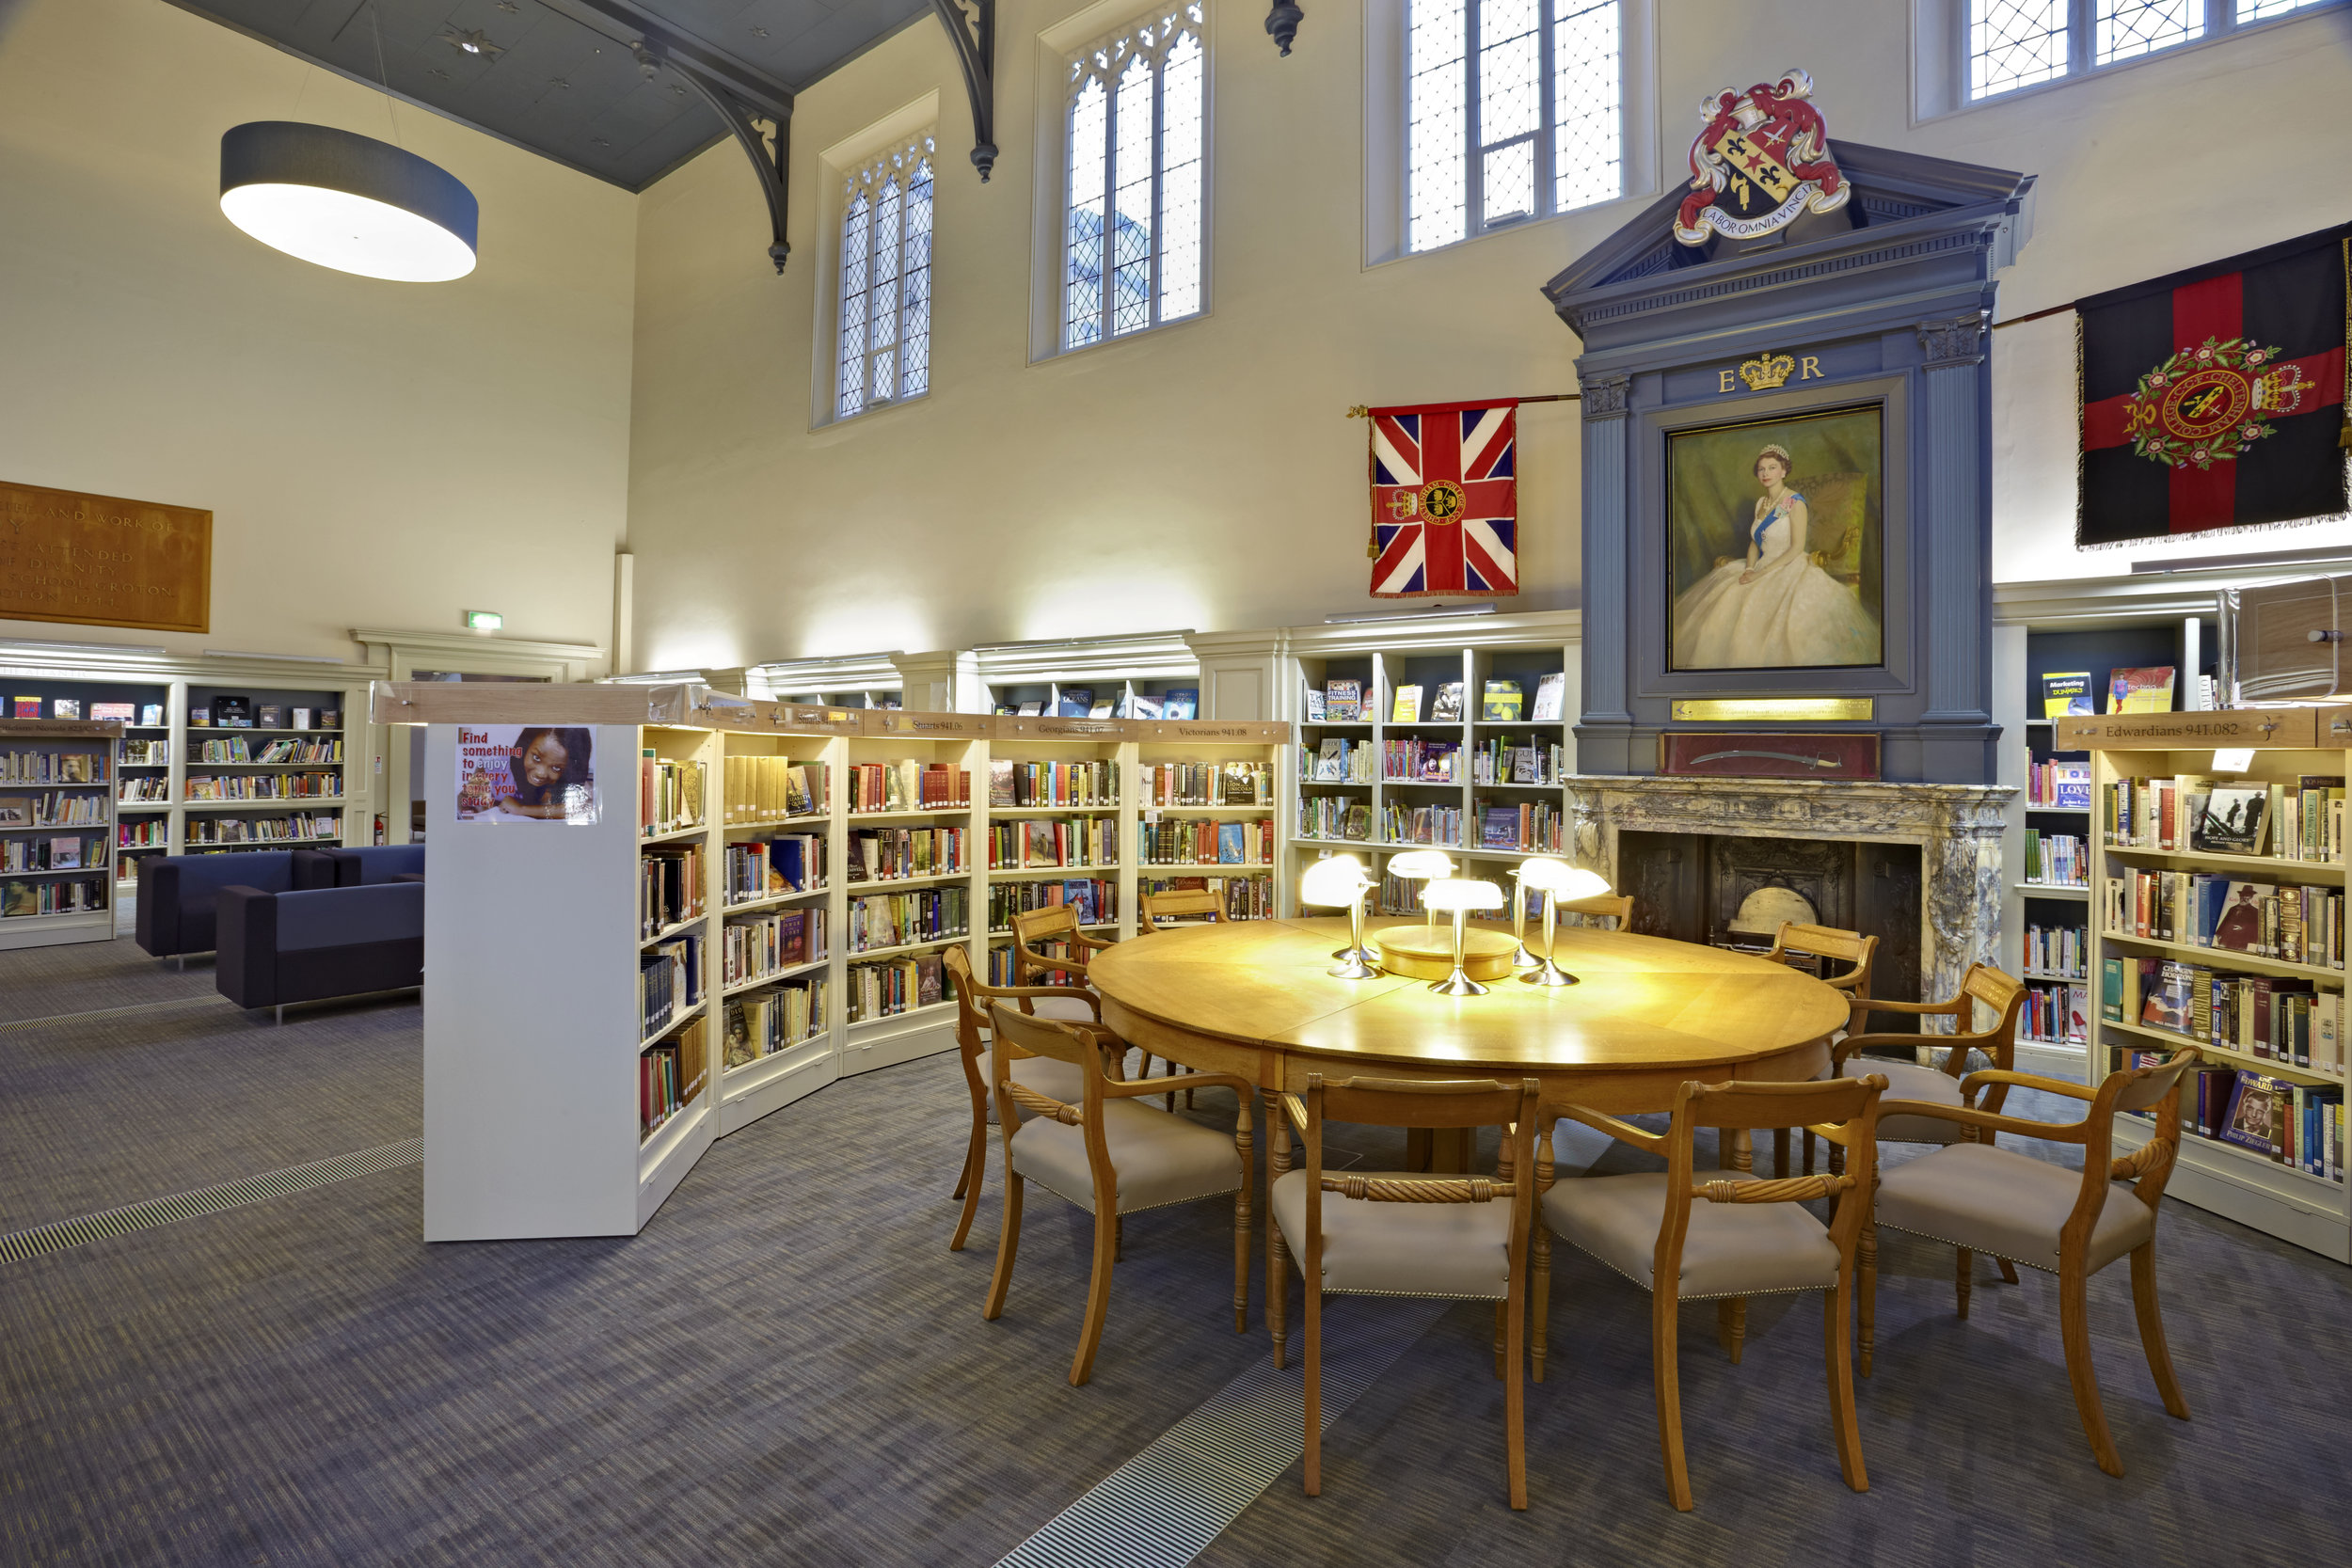 College library with bookshelves, table and seating.